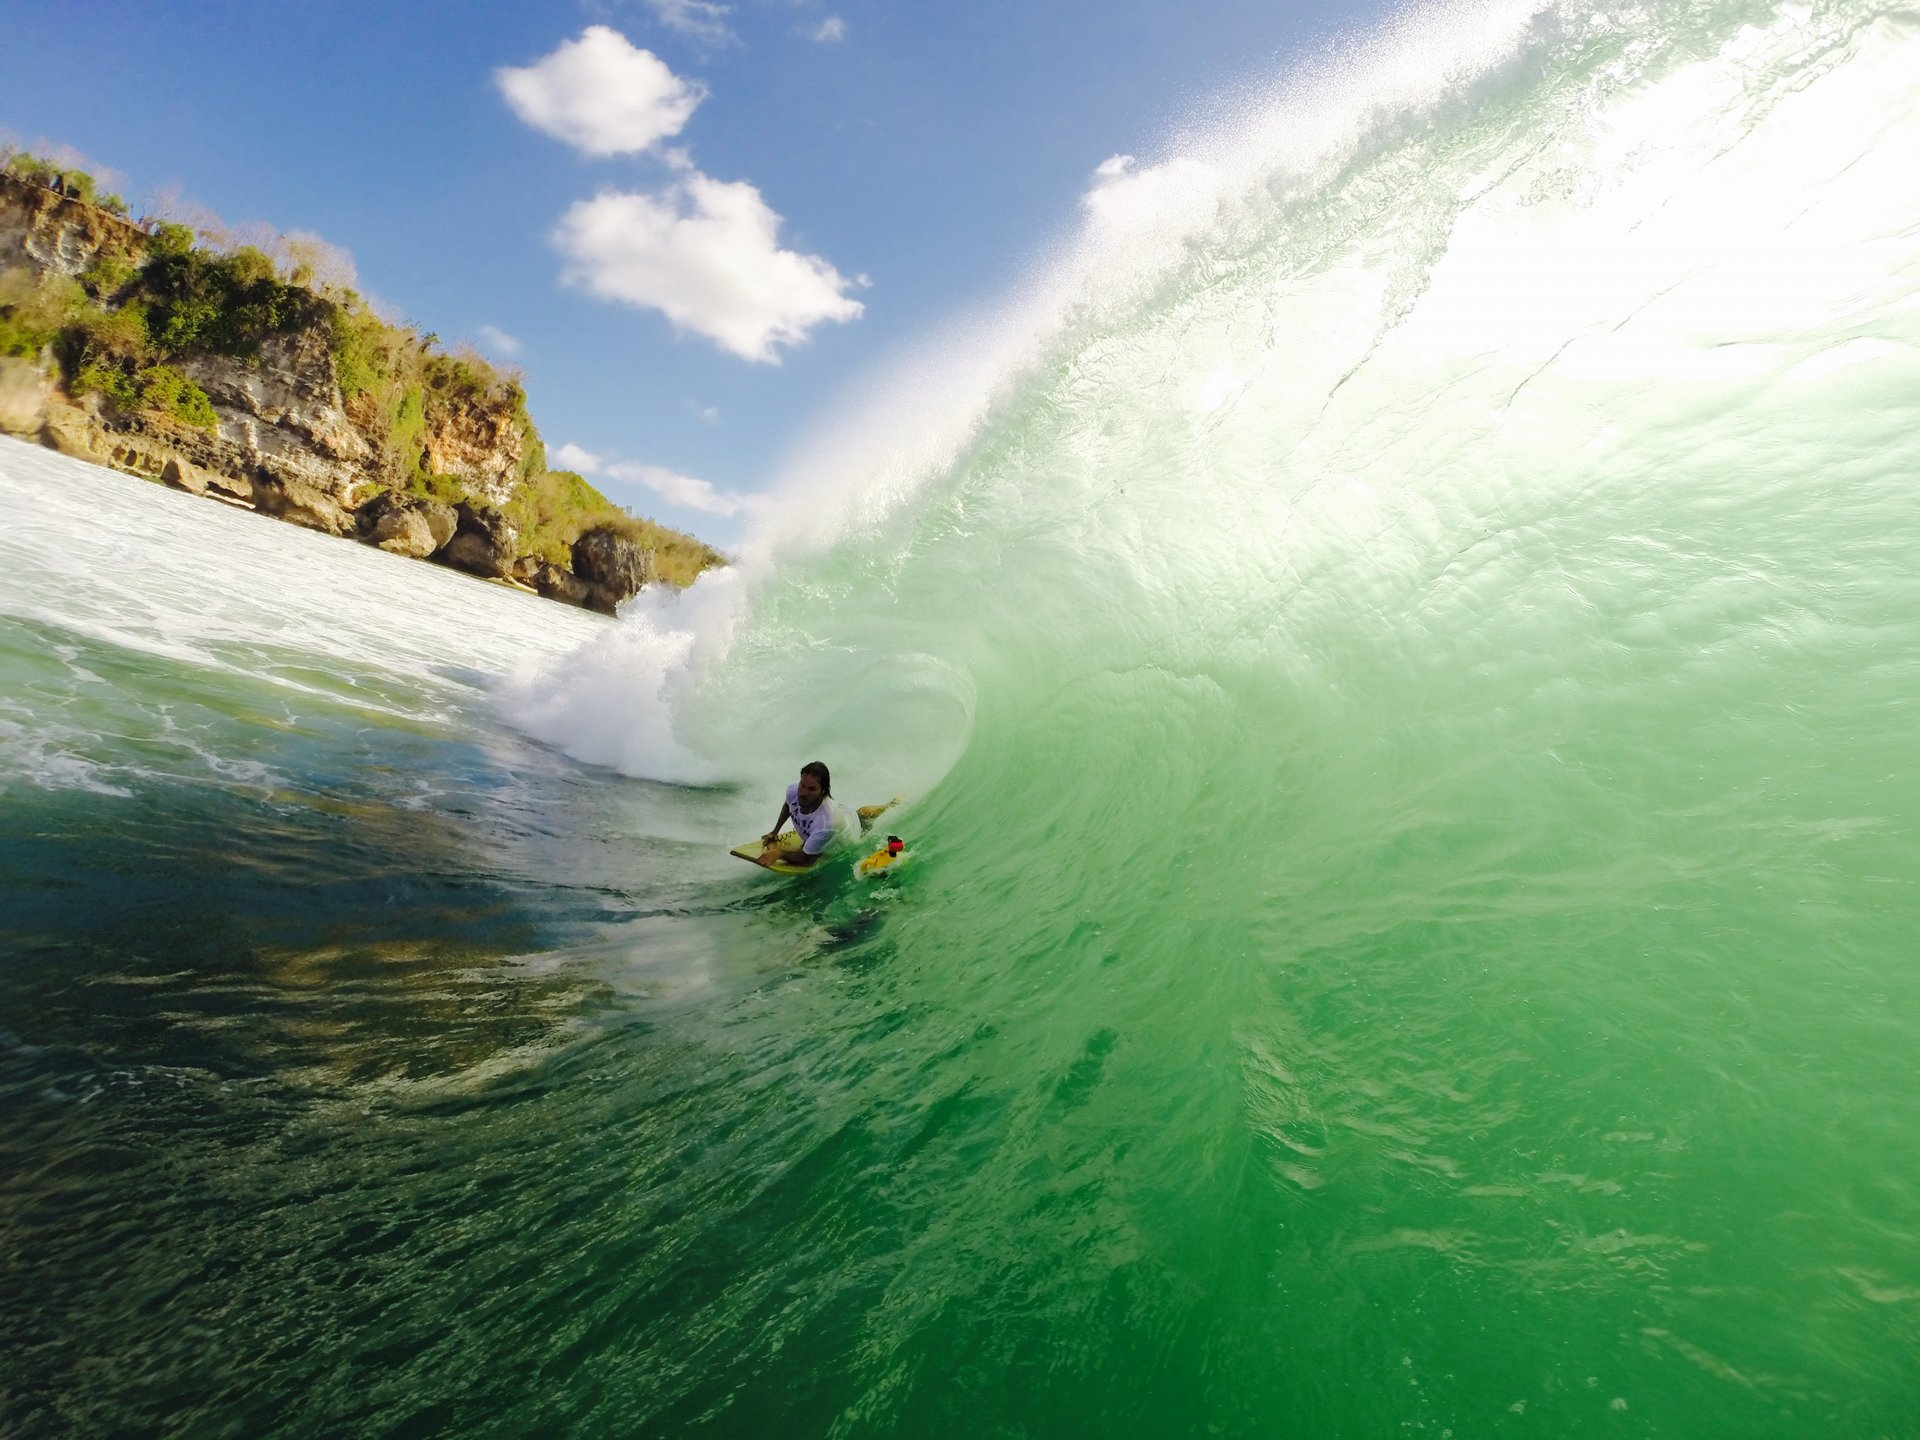 Jake Crosby's photo of Padang Padang